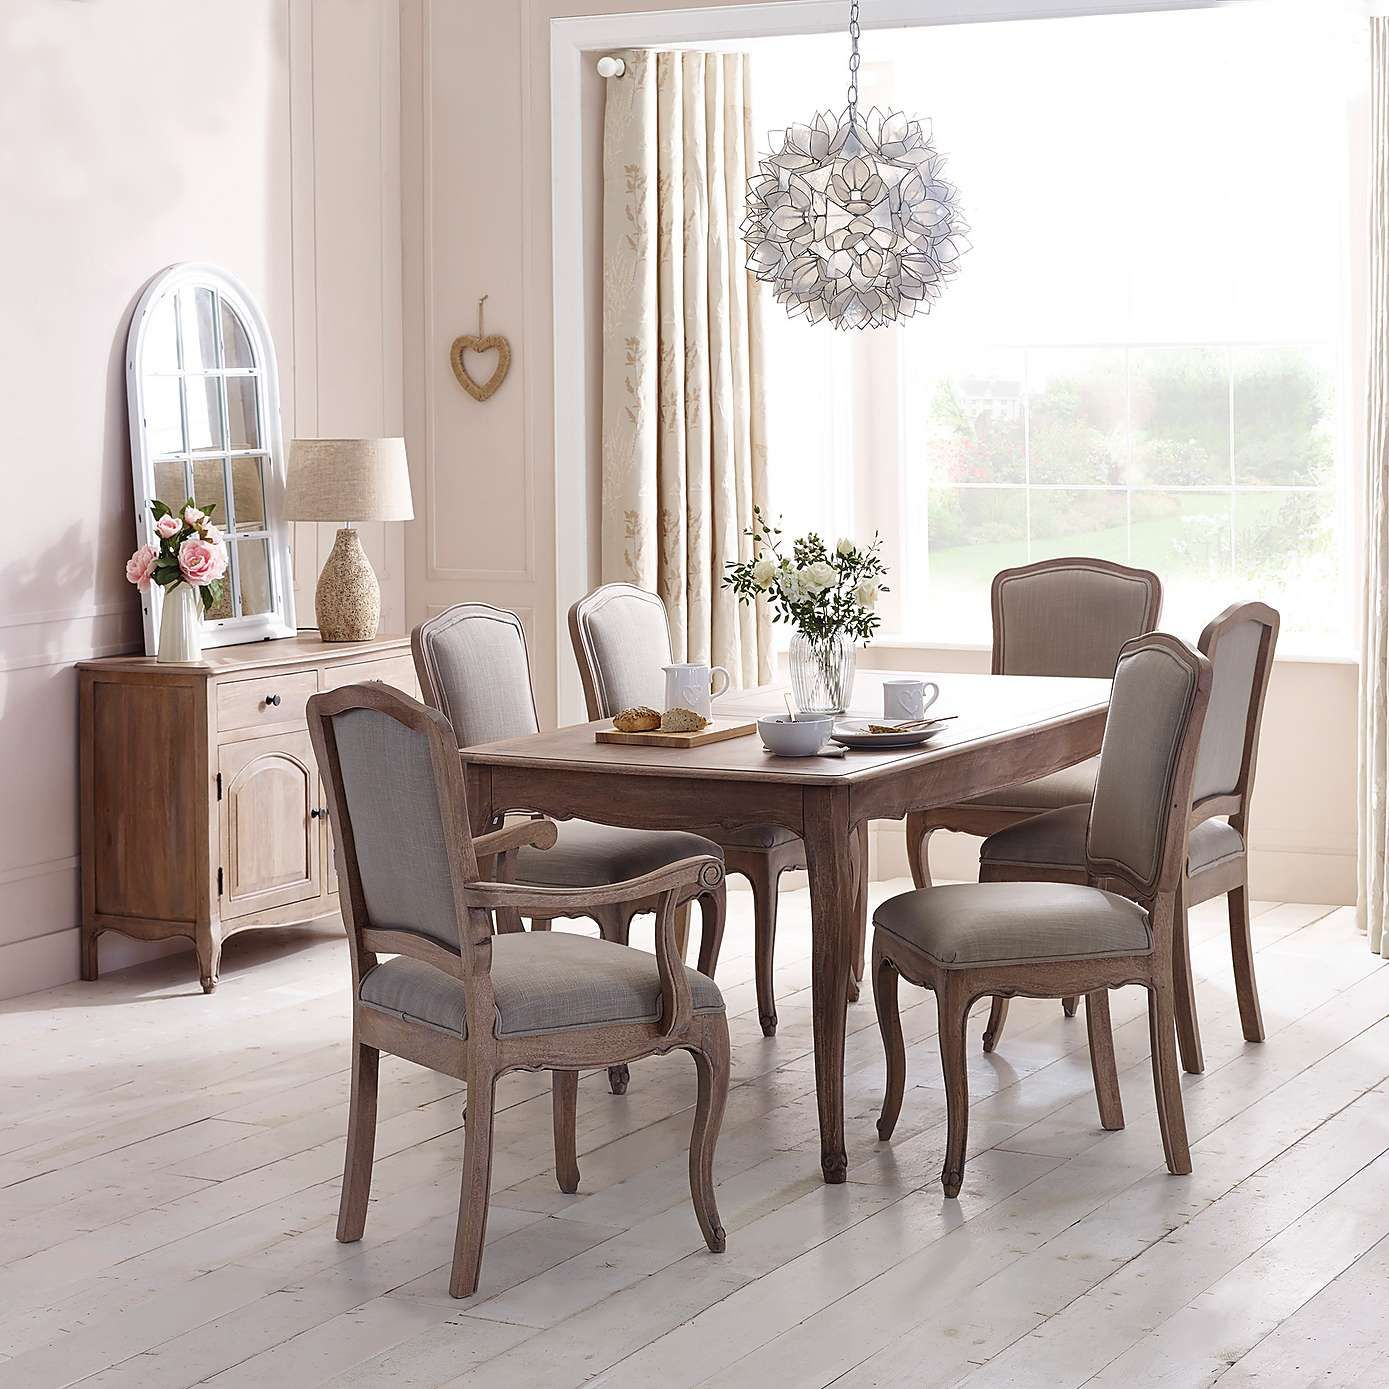 Amelie Pair Of Dining Chairs Natural Extendable Dining Table